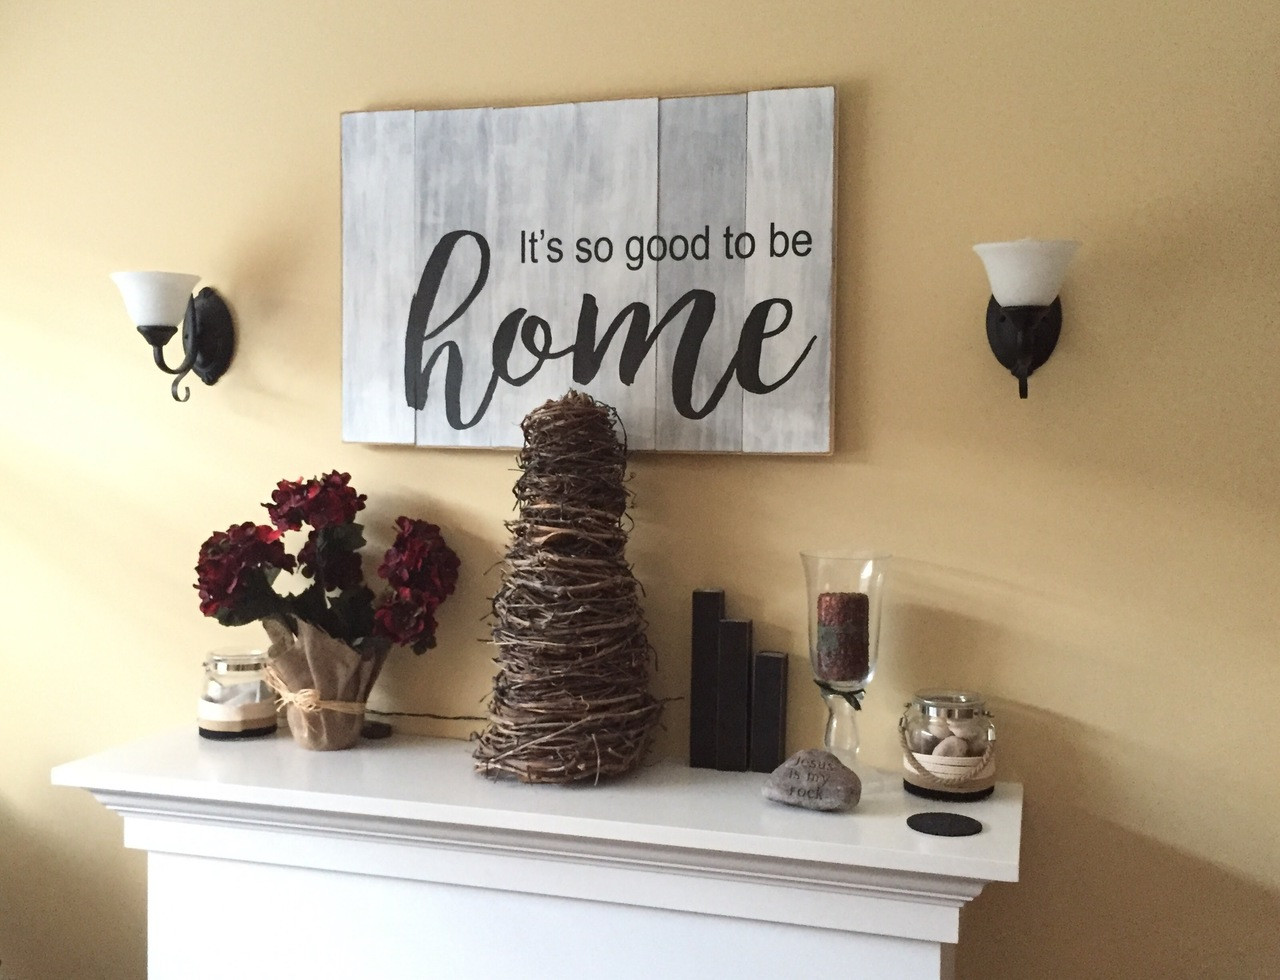 It's so good to be home rustic sign